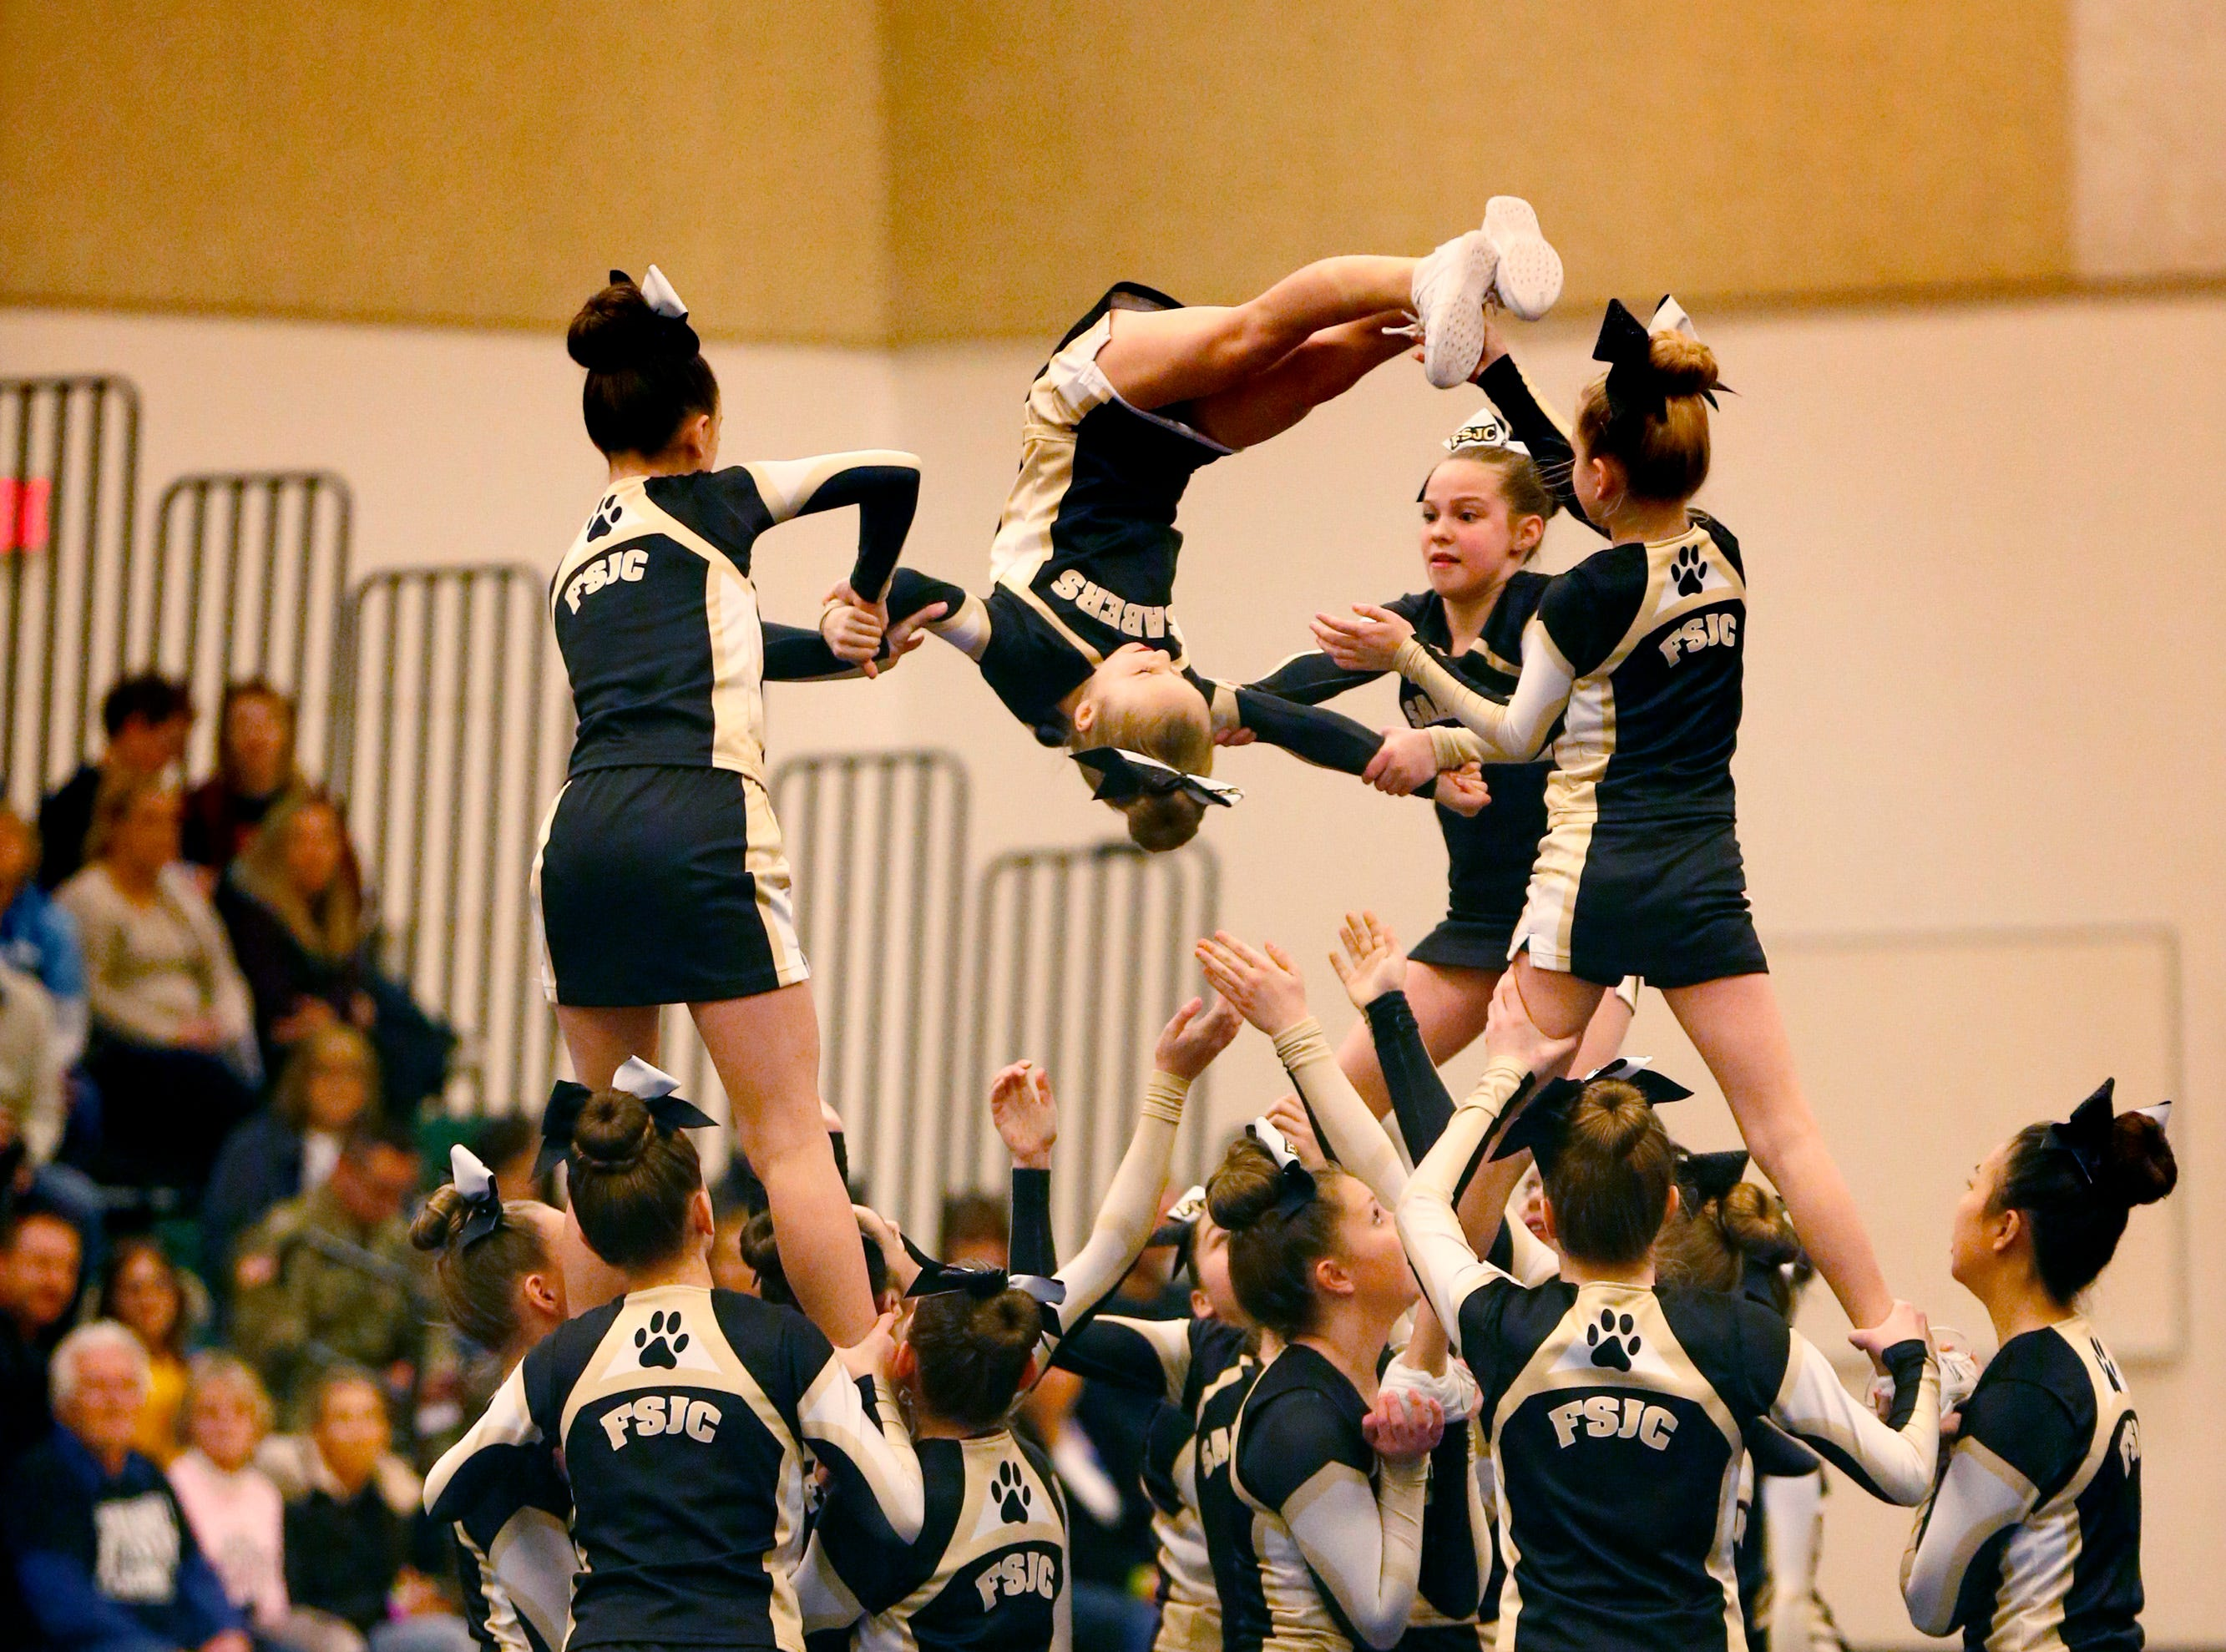 The Franklin Saber Jr. Cheer team flips out of a stack while competing in the middle school division during the Greenfield Xtreme Cheer competition at Greenfield High School on Jan. 12 that drew 56 teams competing in 13 divisions.